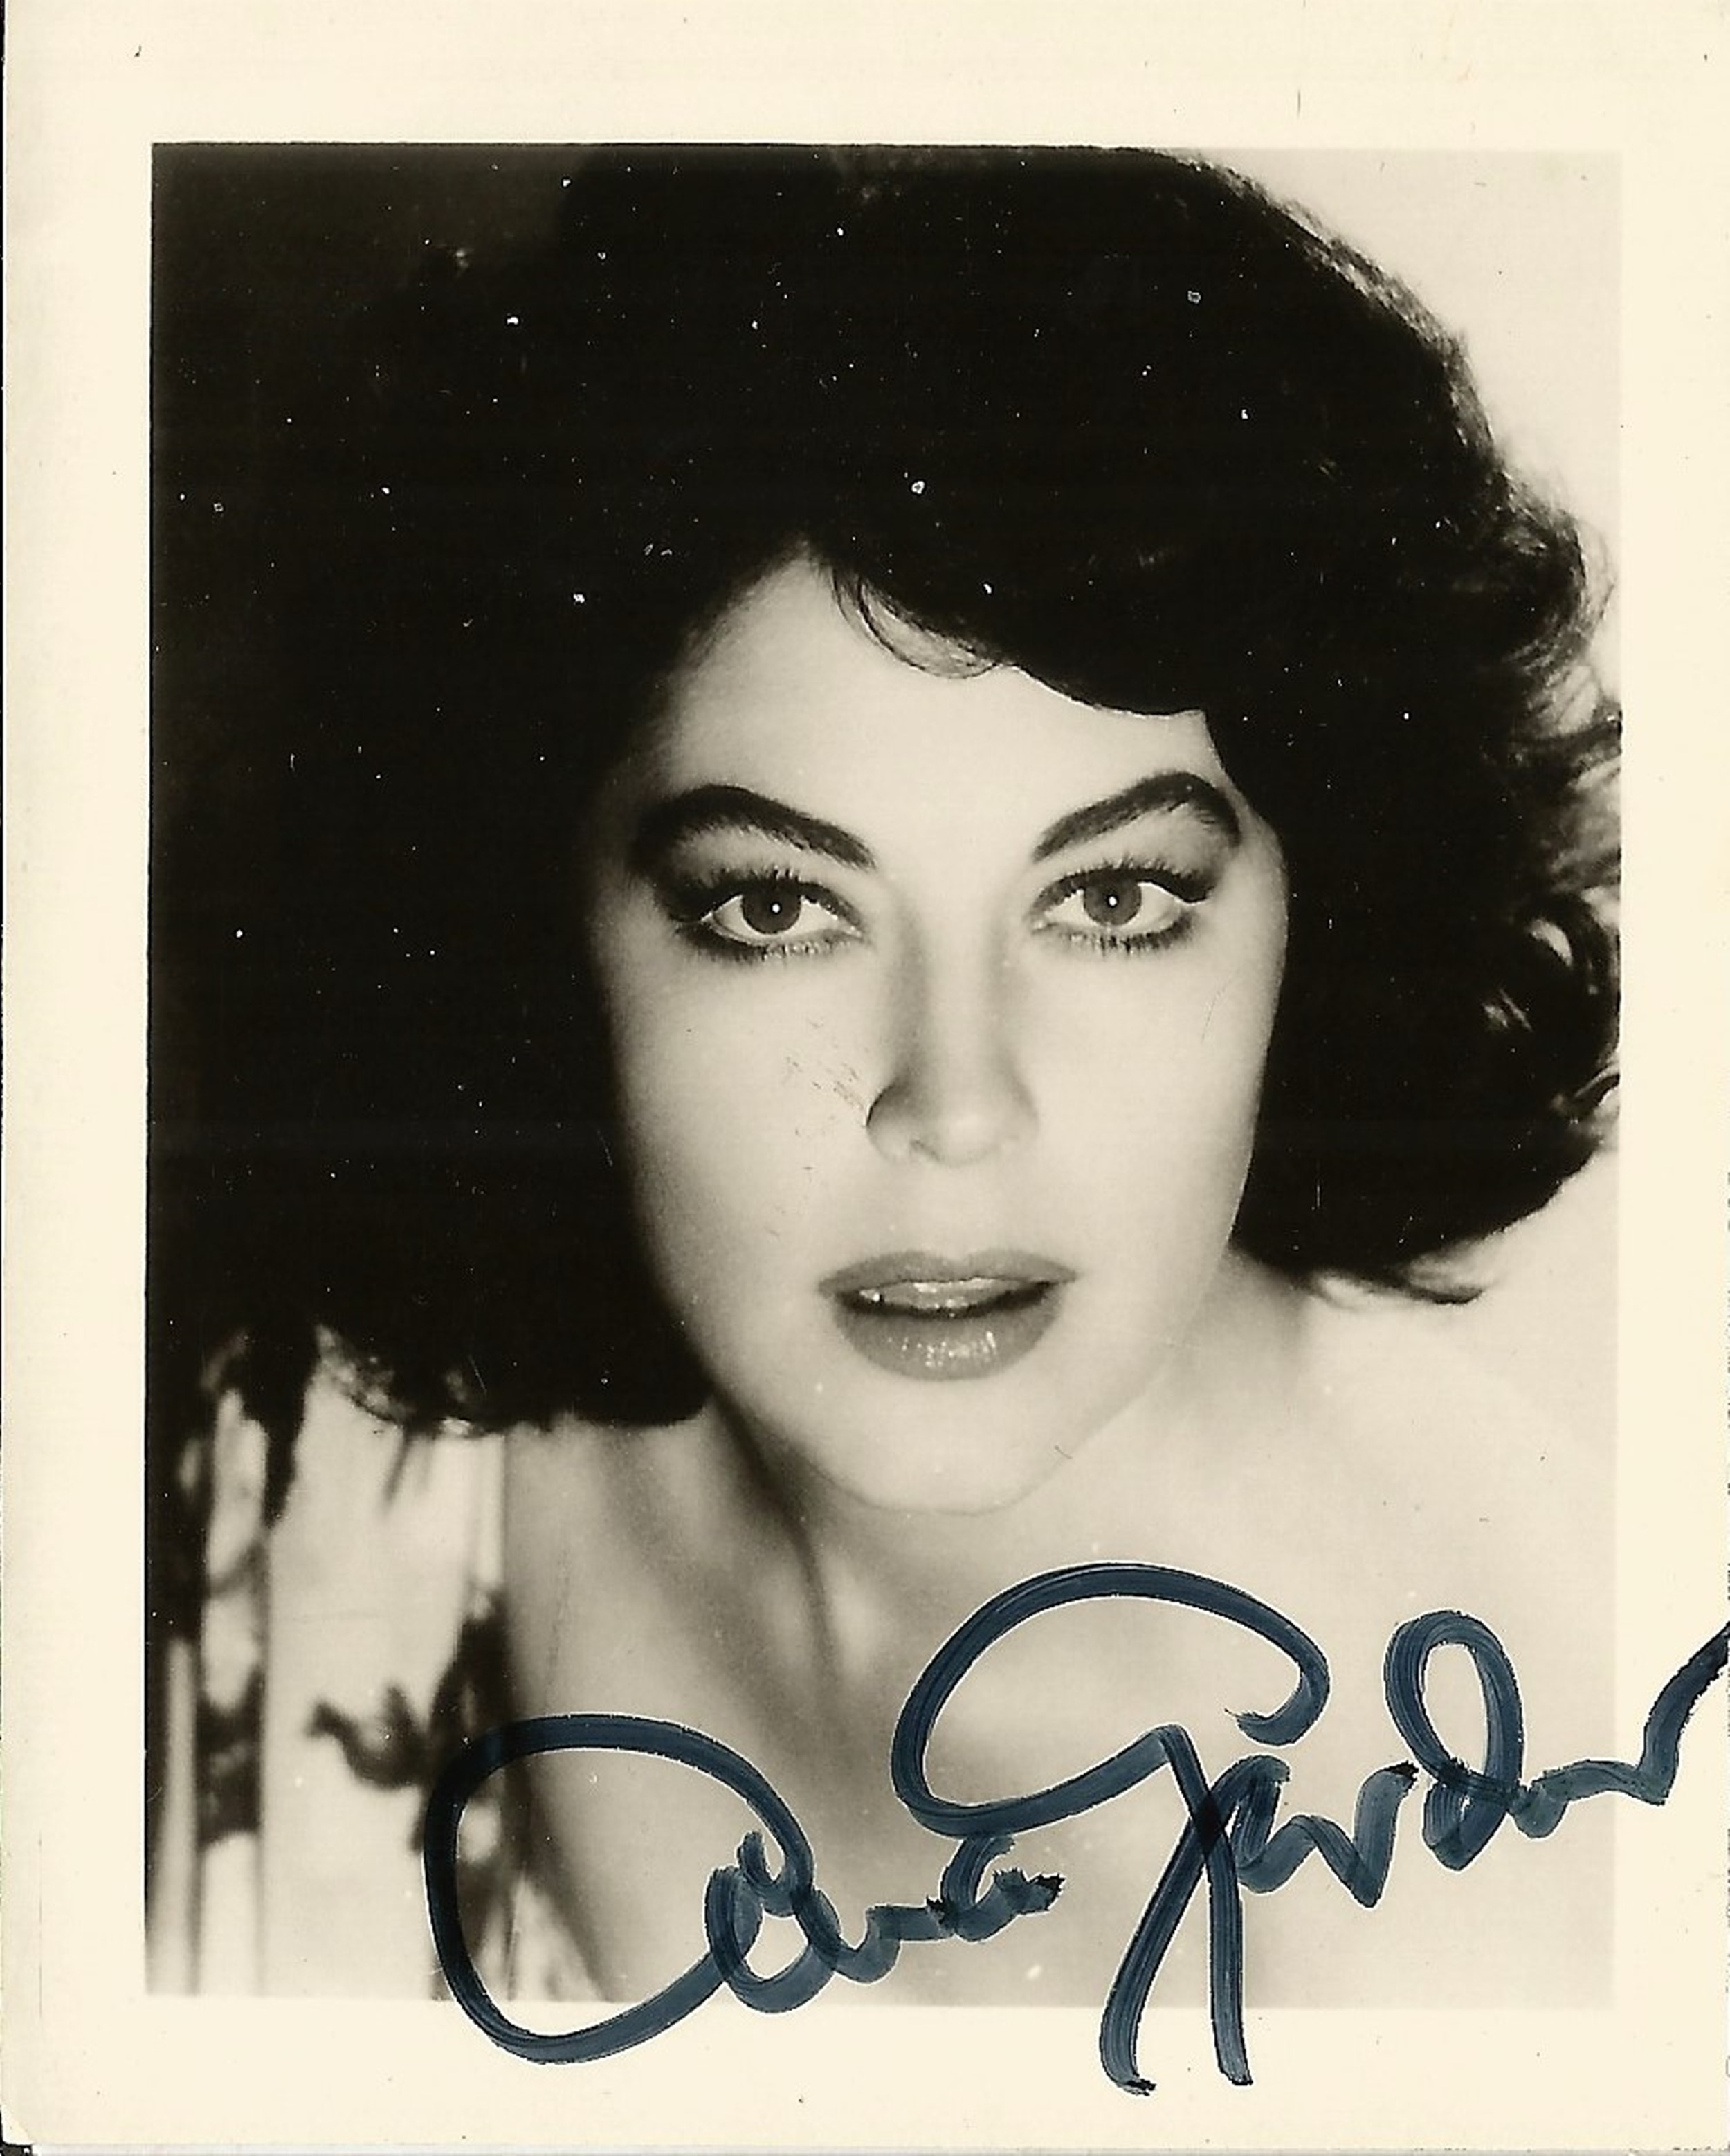 Ava Gardner signed 4x3 black and white photo. Good condition. All autographs come with a Certificate